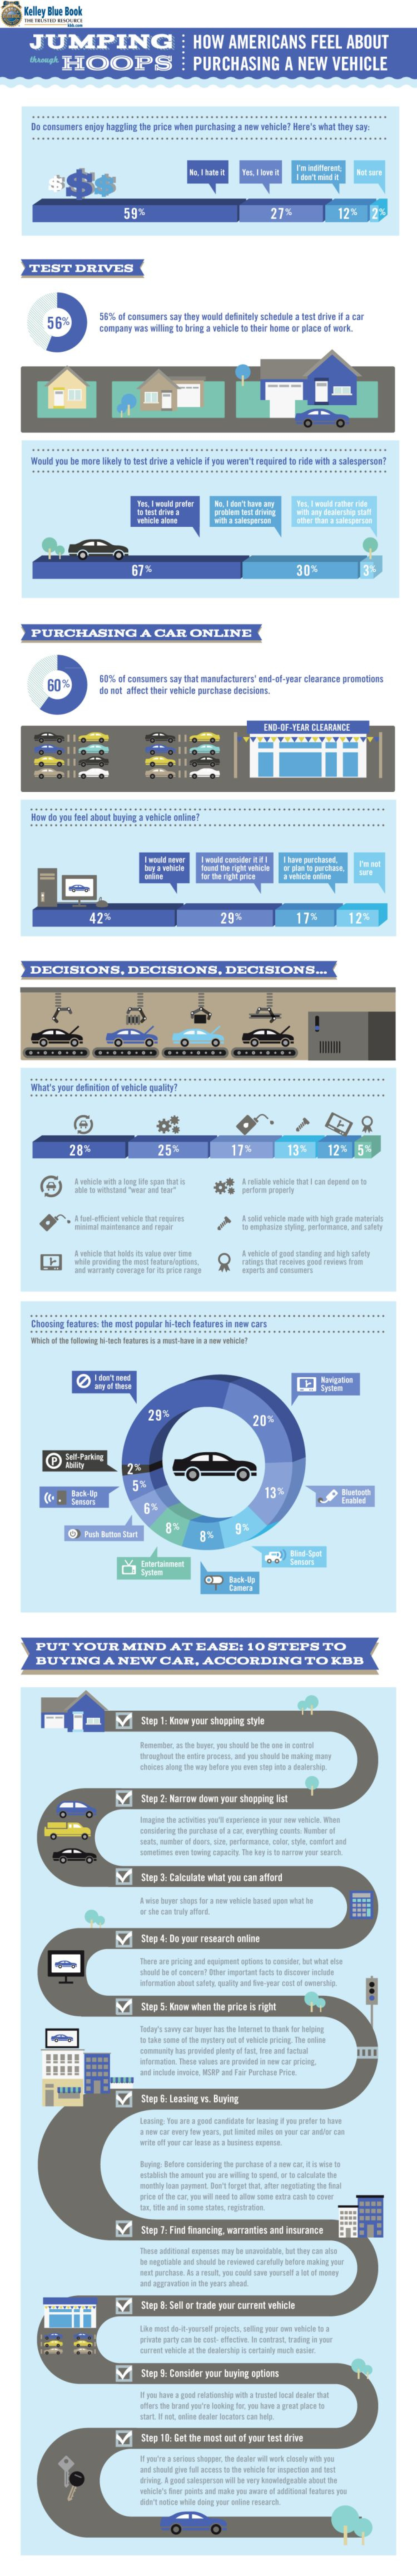 Do Americans Like Buying Cars? Infographic